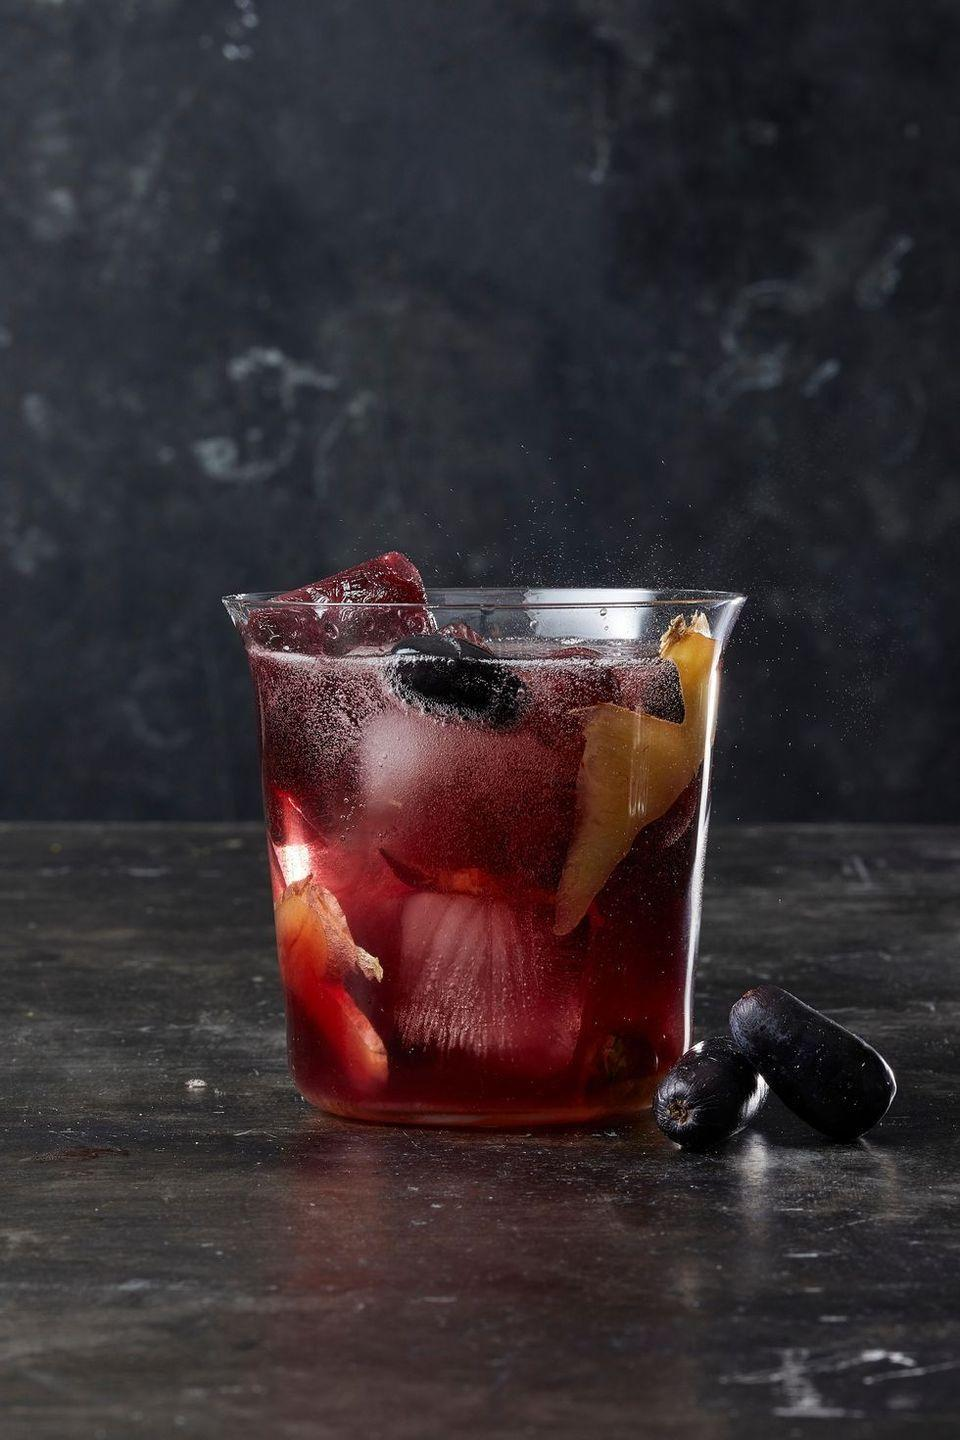 """<p>It's all our favorite winter flavors — ginger, grape, brown sugar, and prosecco — in one gorgeous cup. </p><p><em><a href=""""https://www.goodhousekeeping.com/food-recipes/a28554897/sparkling-ginger-sangria-recipe/"""" rel=""""nofollow noopener"""" target=""""_blank"""" data-ylk=""""slk:Get the recipe for Sparkling Ginger Sangria »"""" class=""""link rapid-noclick-resp"""">Get the recipe for Sparkling Ginger Sangria »</a></em> </p>"""